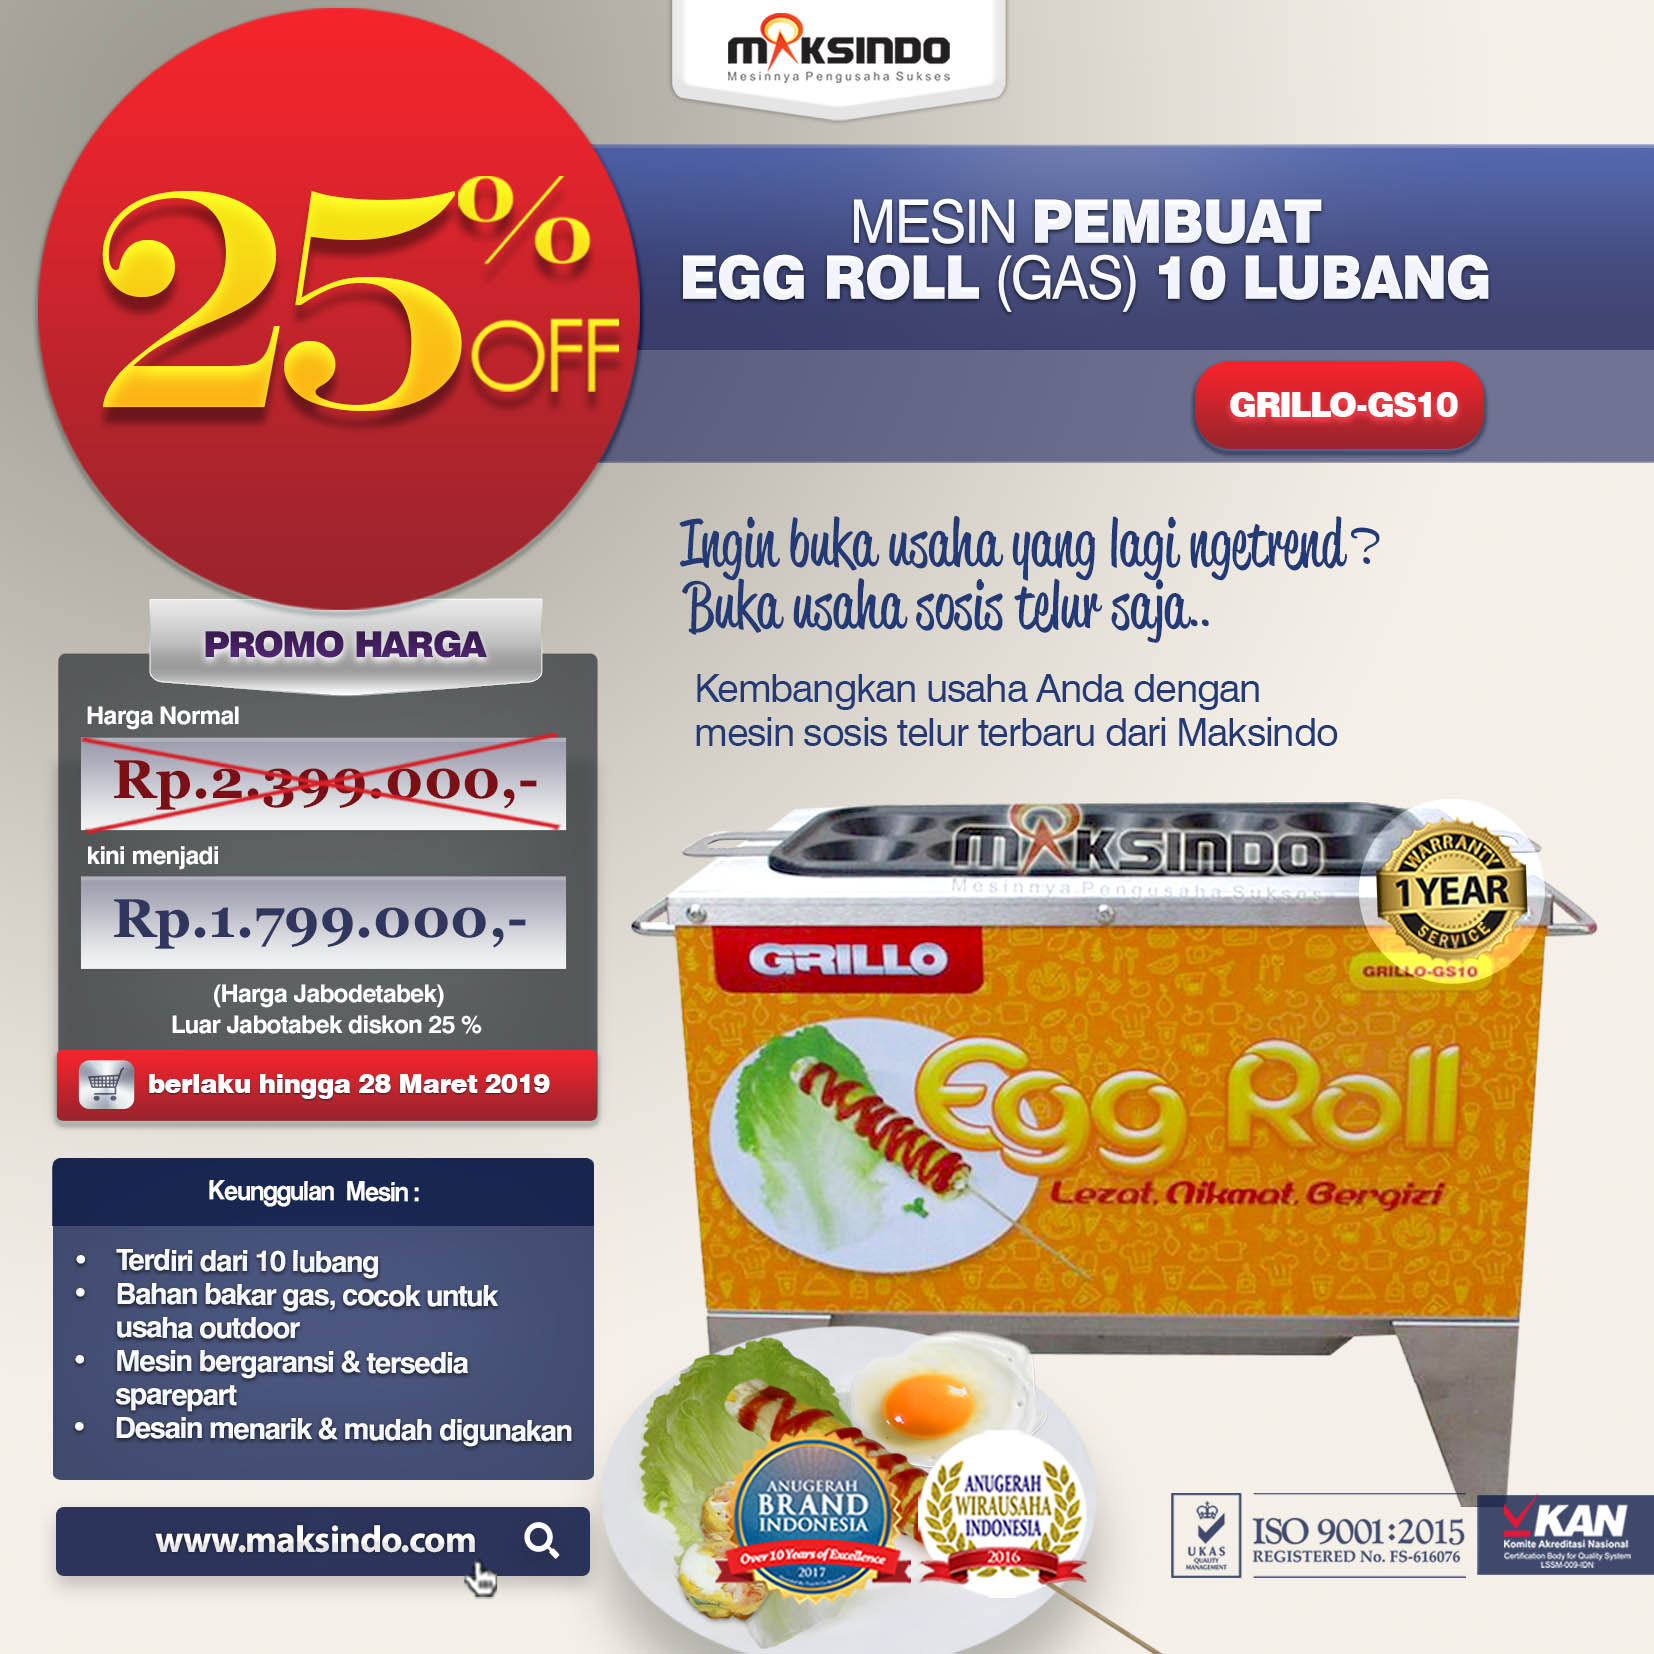 GRILLO-GS10 Mesin Pembuat EGG ROLL (GAS) 10 LUBANG